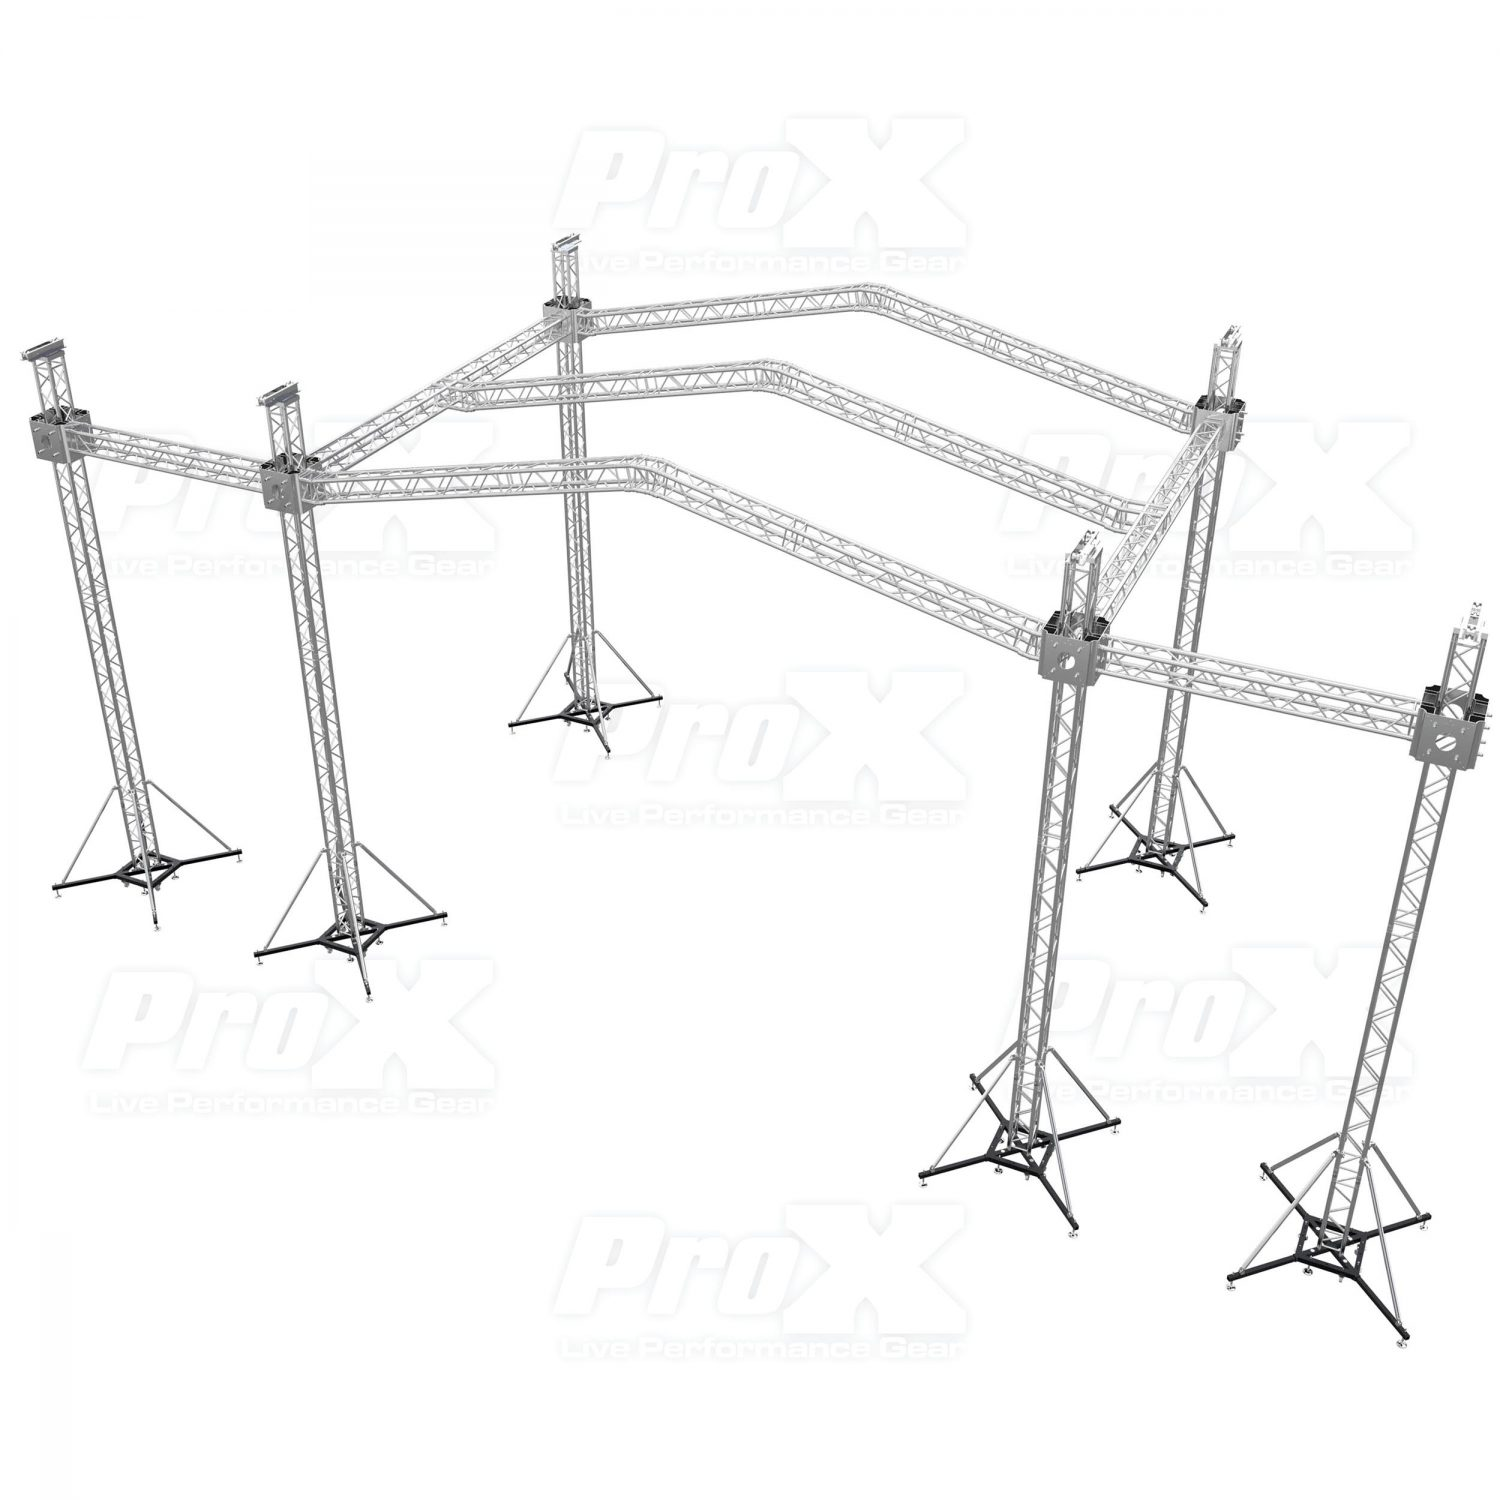 Prox Xtp Gs Pr3 12d Stage Truss Roofing System